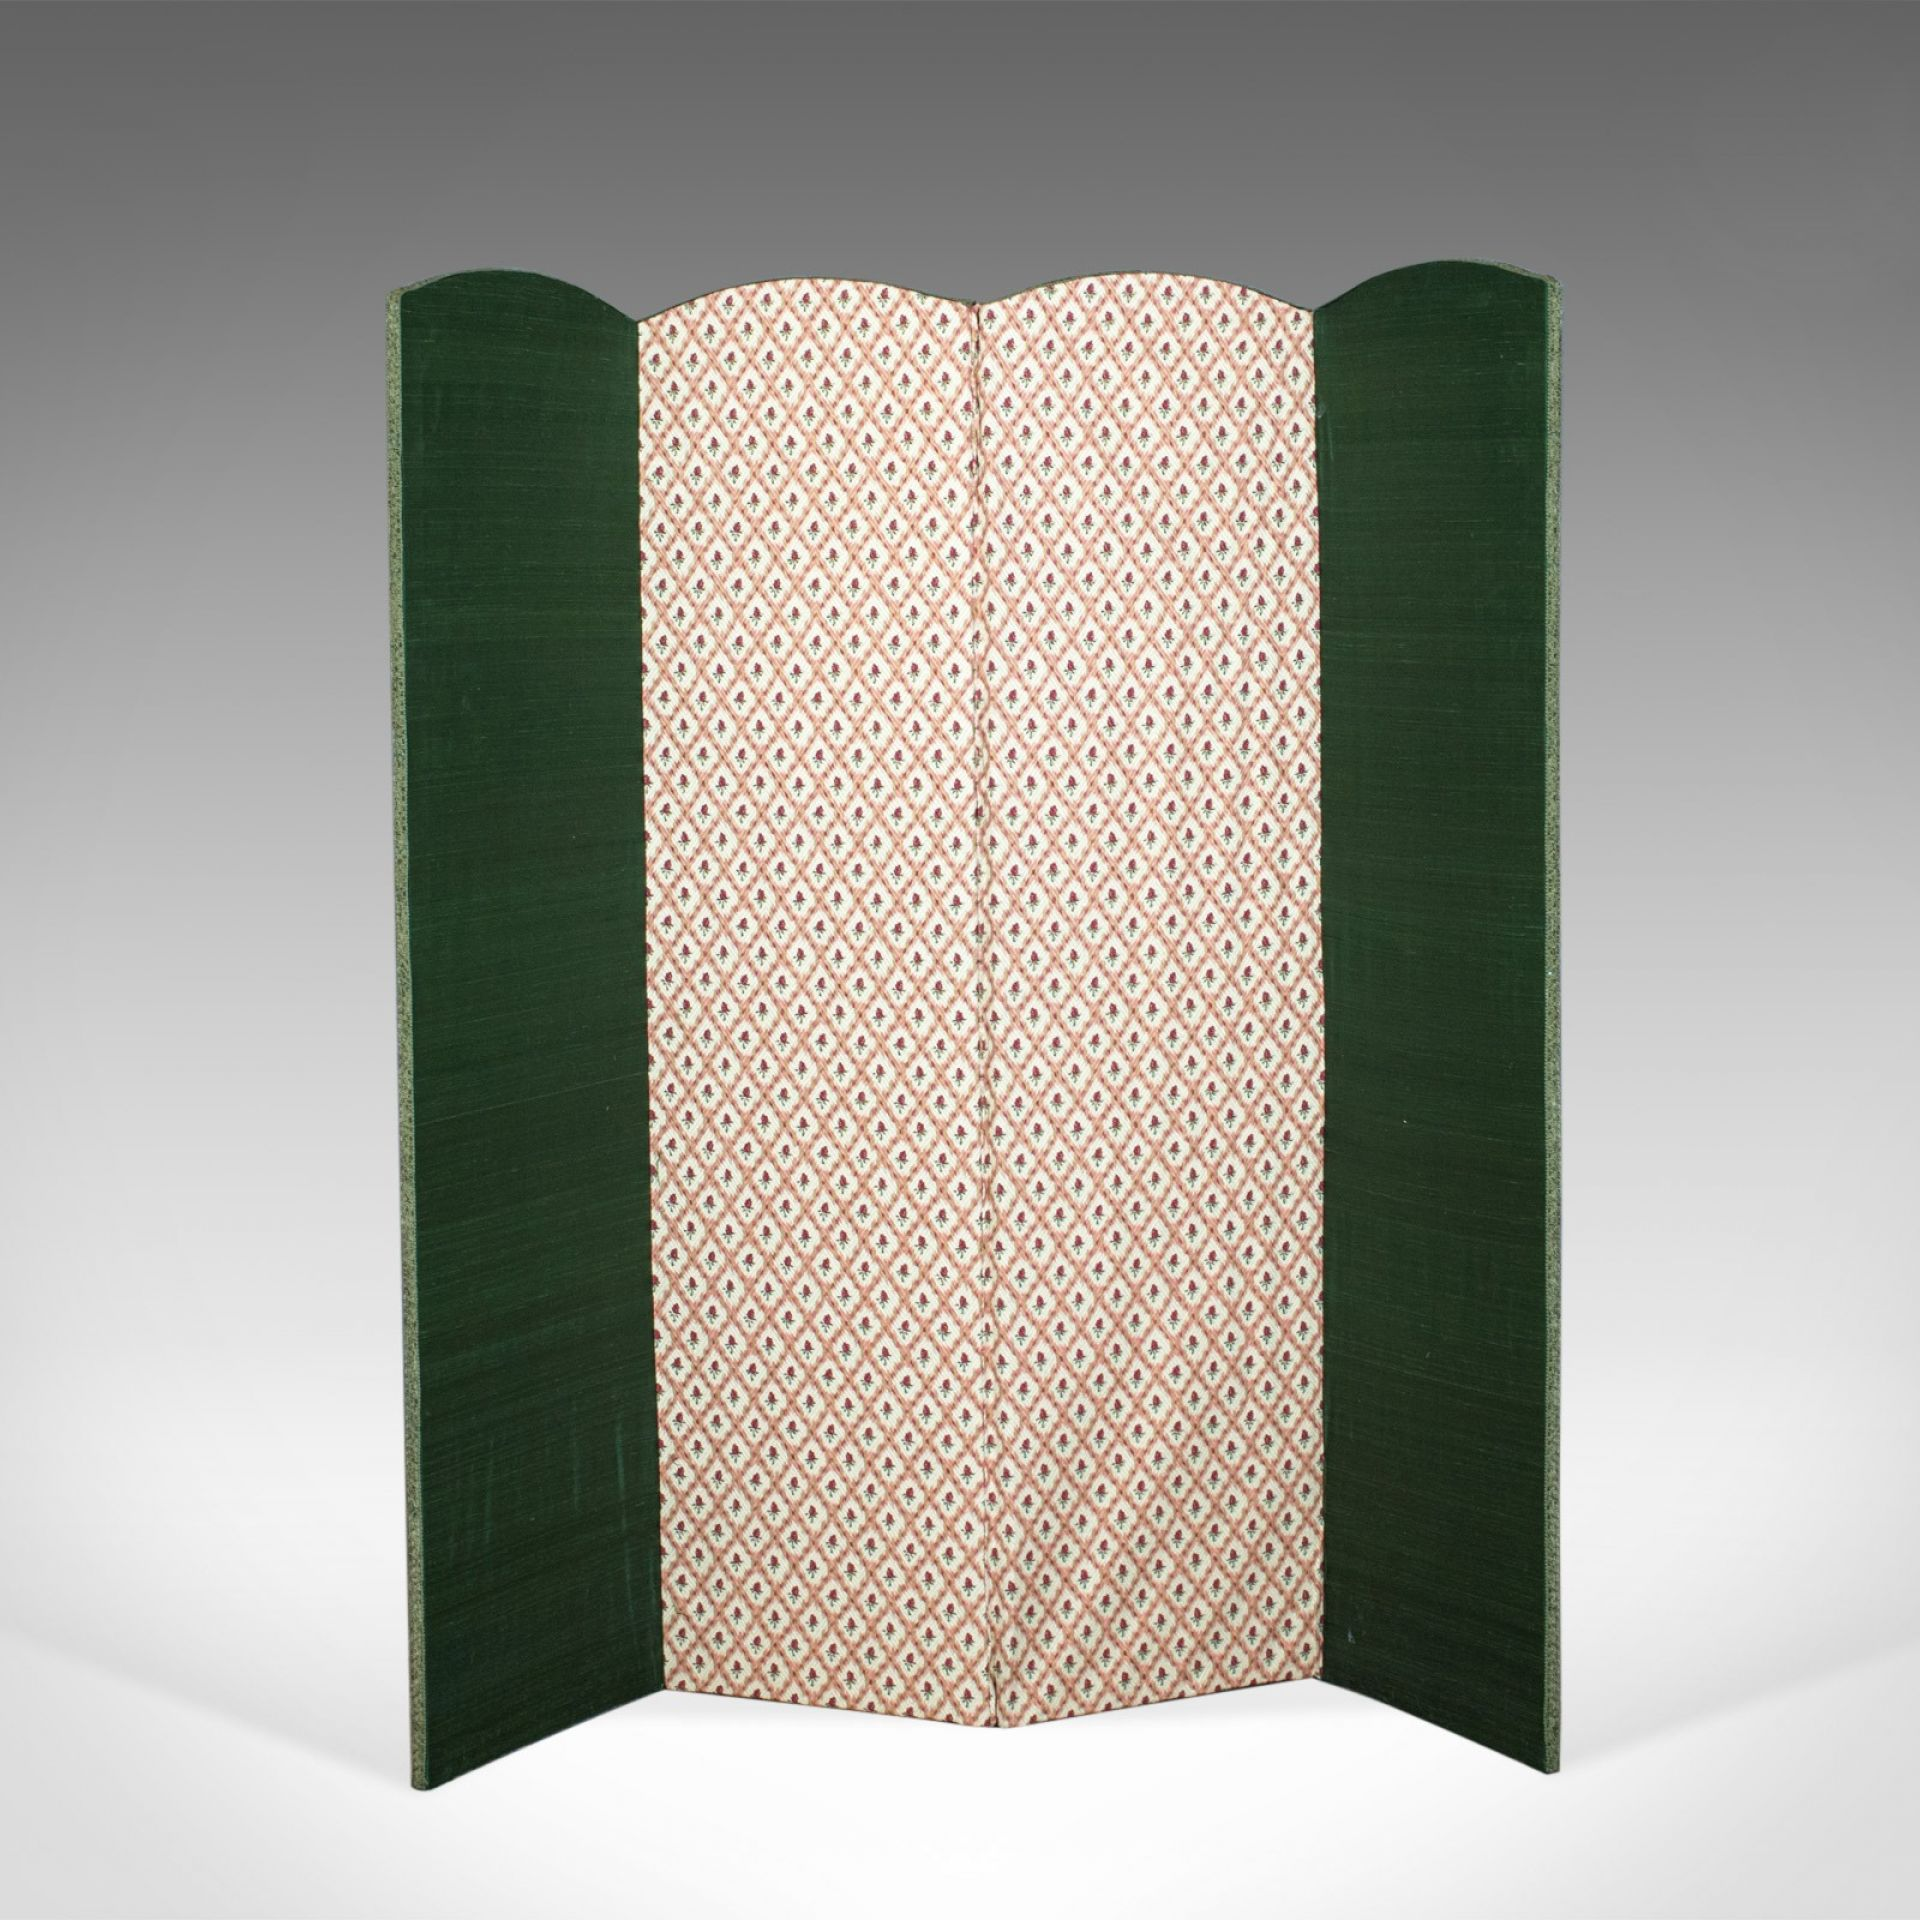 Antique Four Fold Screen, Edwardian, Panel, Room Divider, Photgrapher's Prop